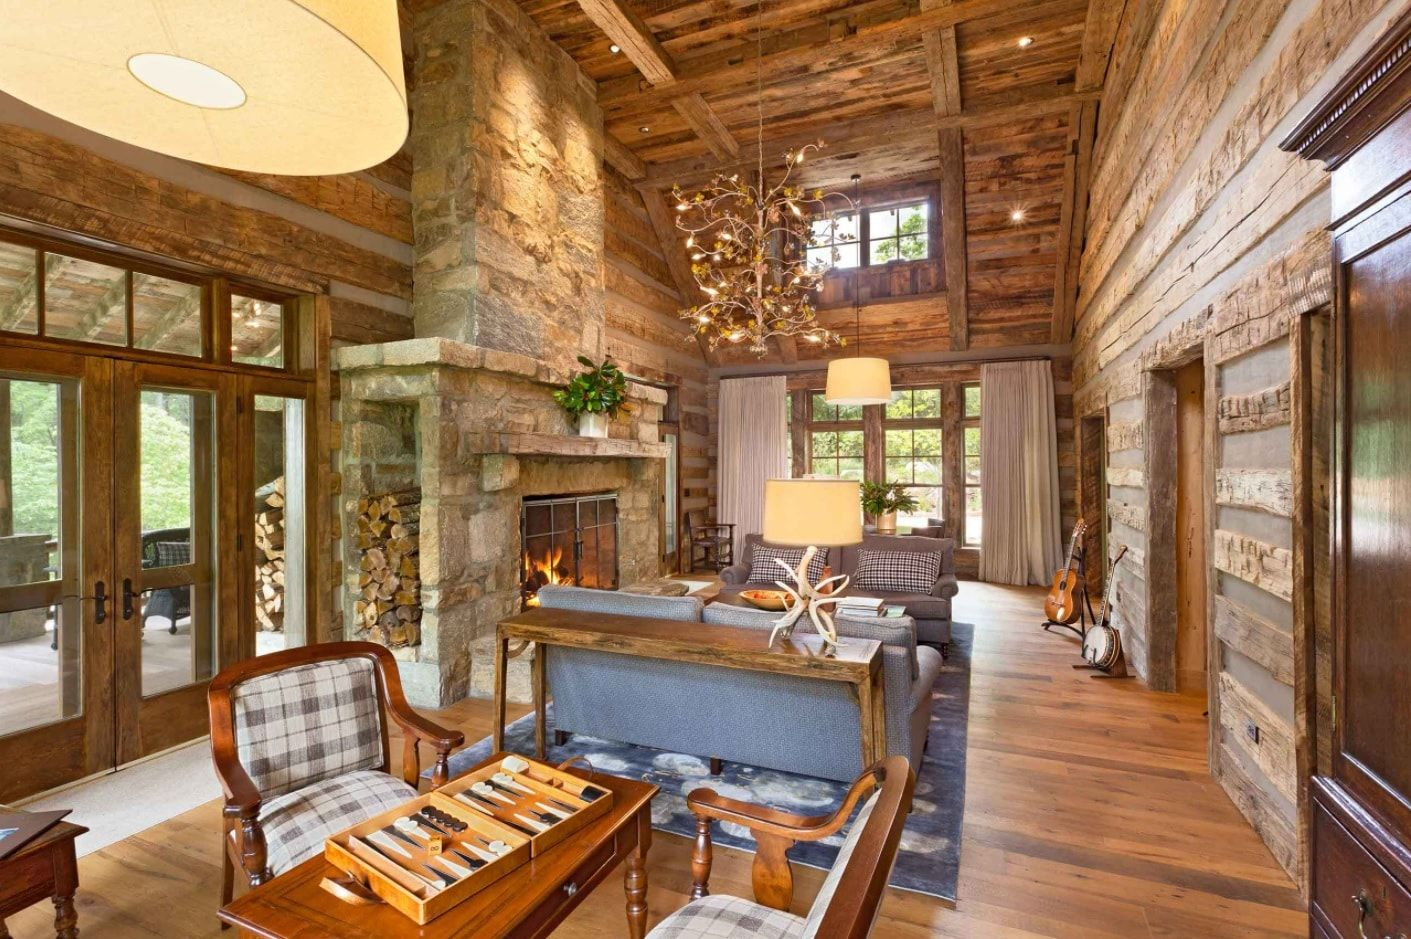 All-wooden private mansion interior with stone oven